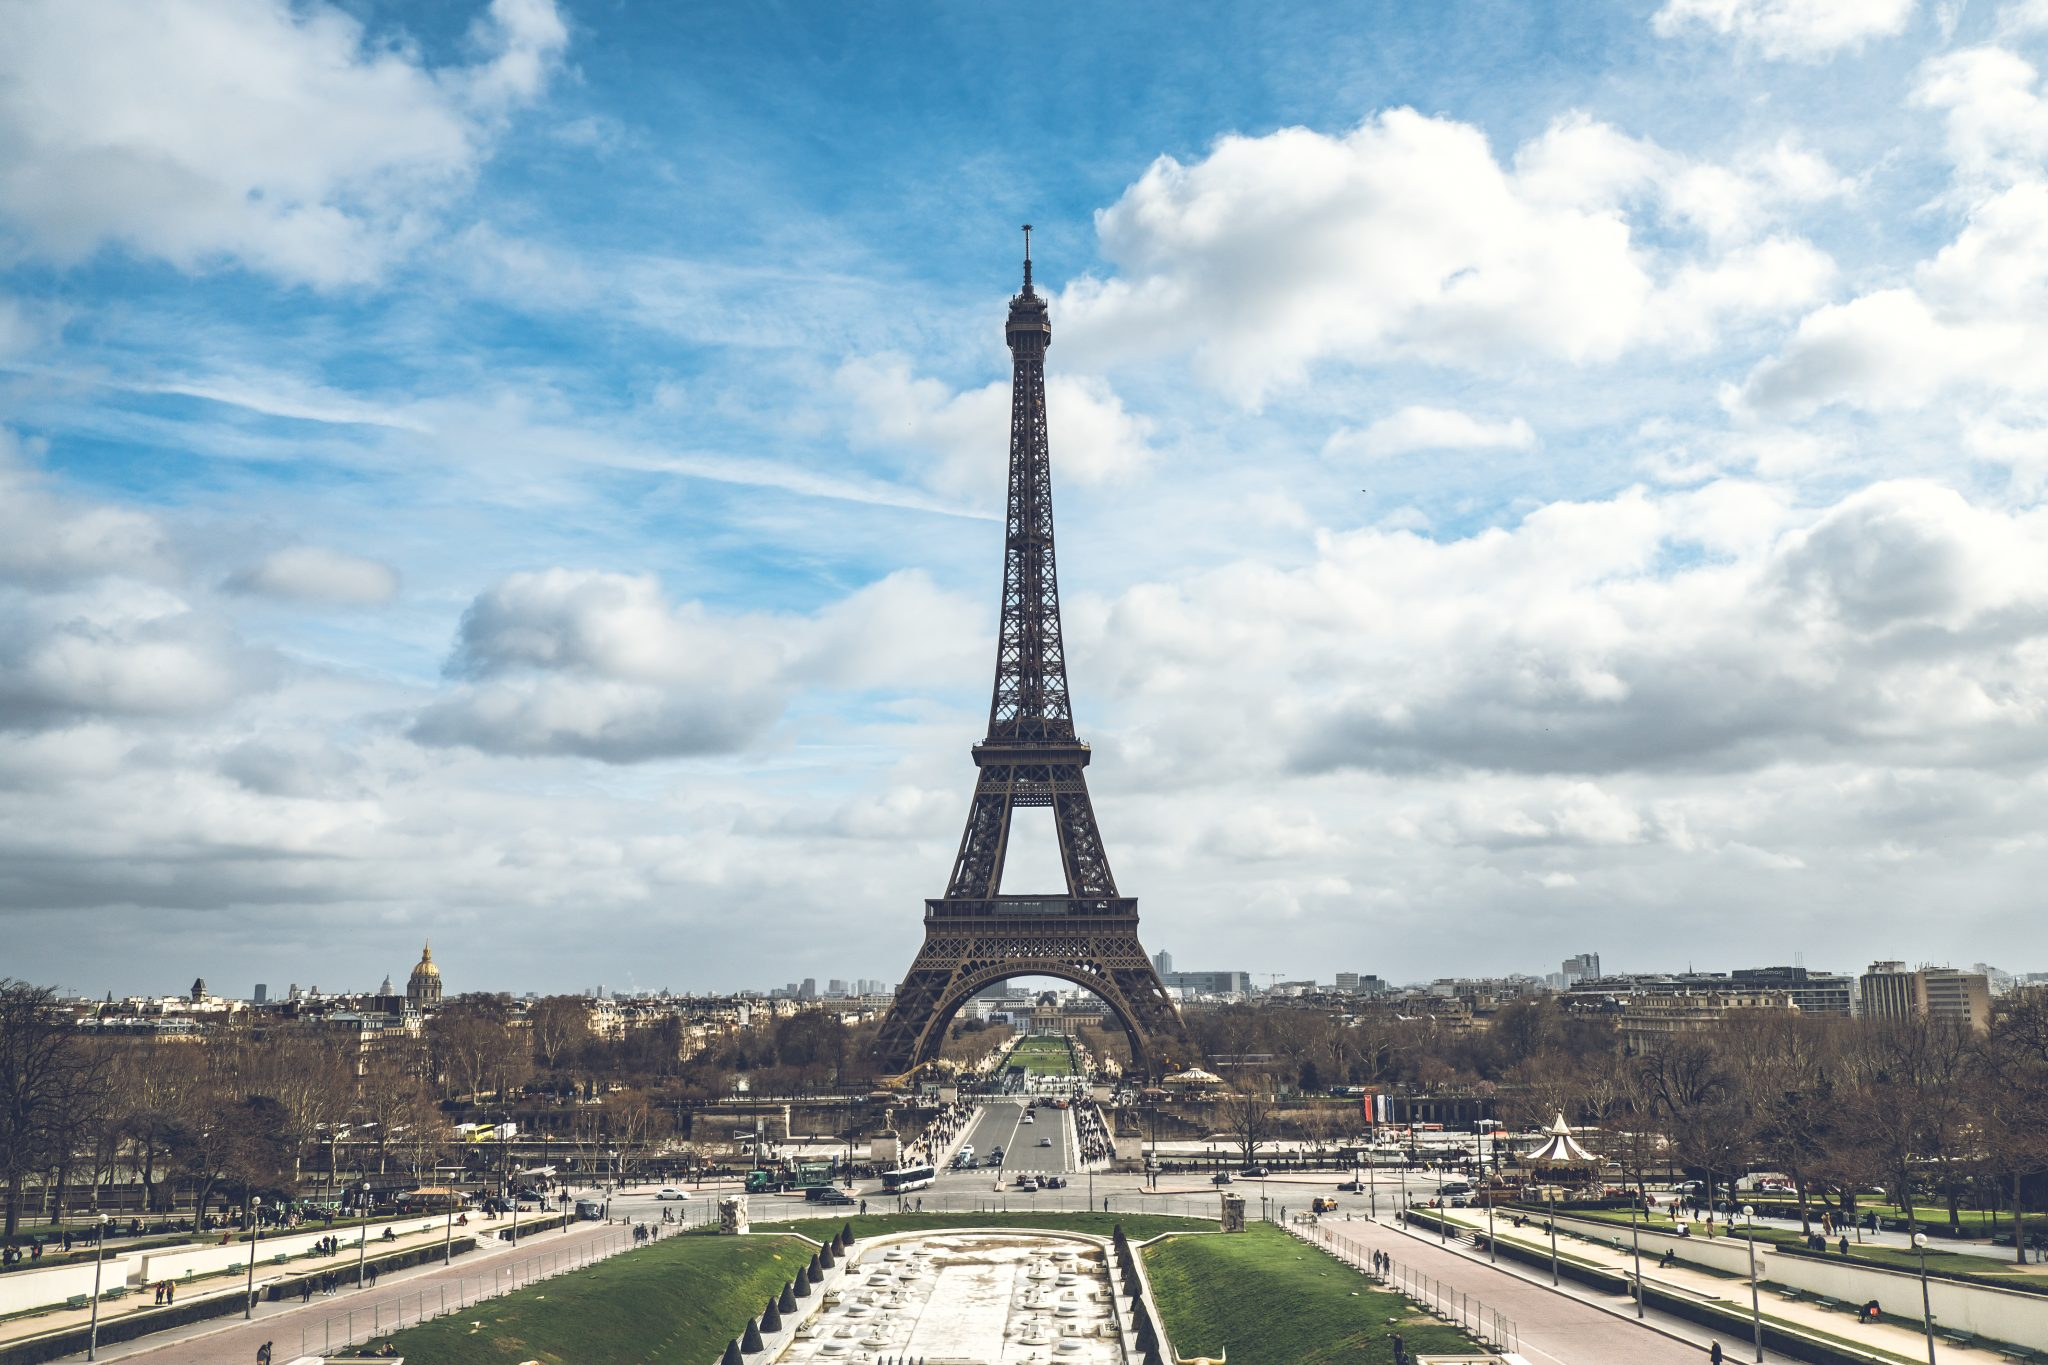 Panoramic view of the eiffel tower shot from the trocadero photo by Jo Kassis